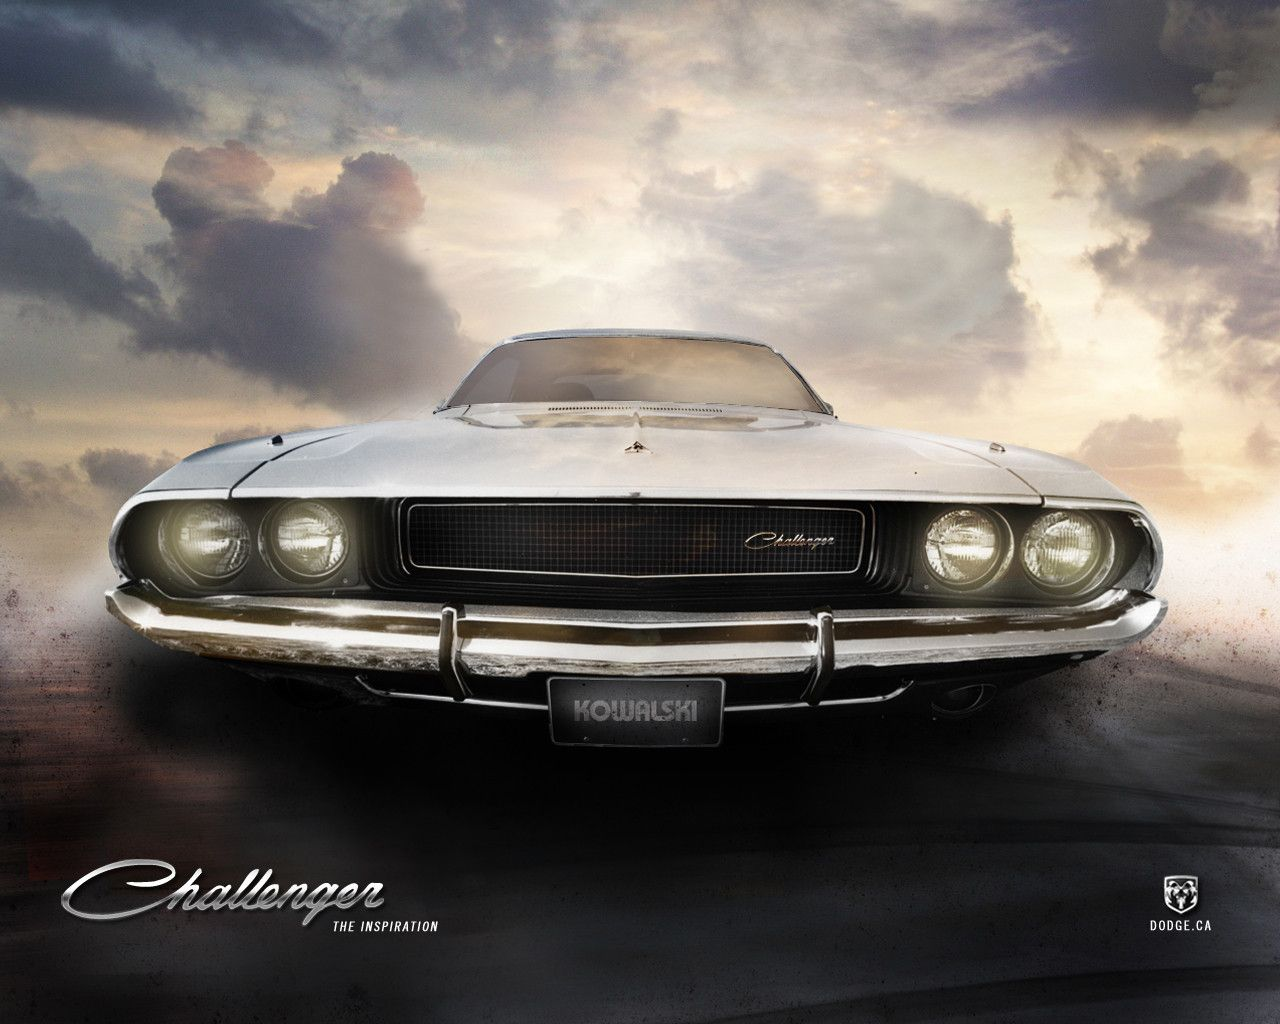 Dodge Charger Wallpapers,  Dodge Charger PC Backgrounds 1280x1024